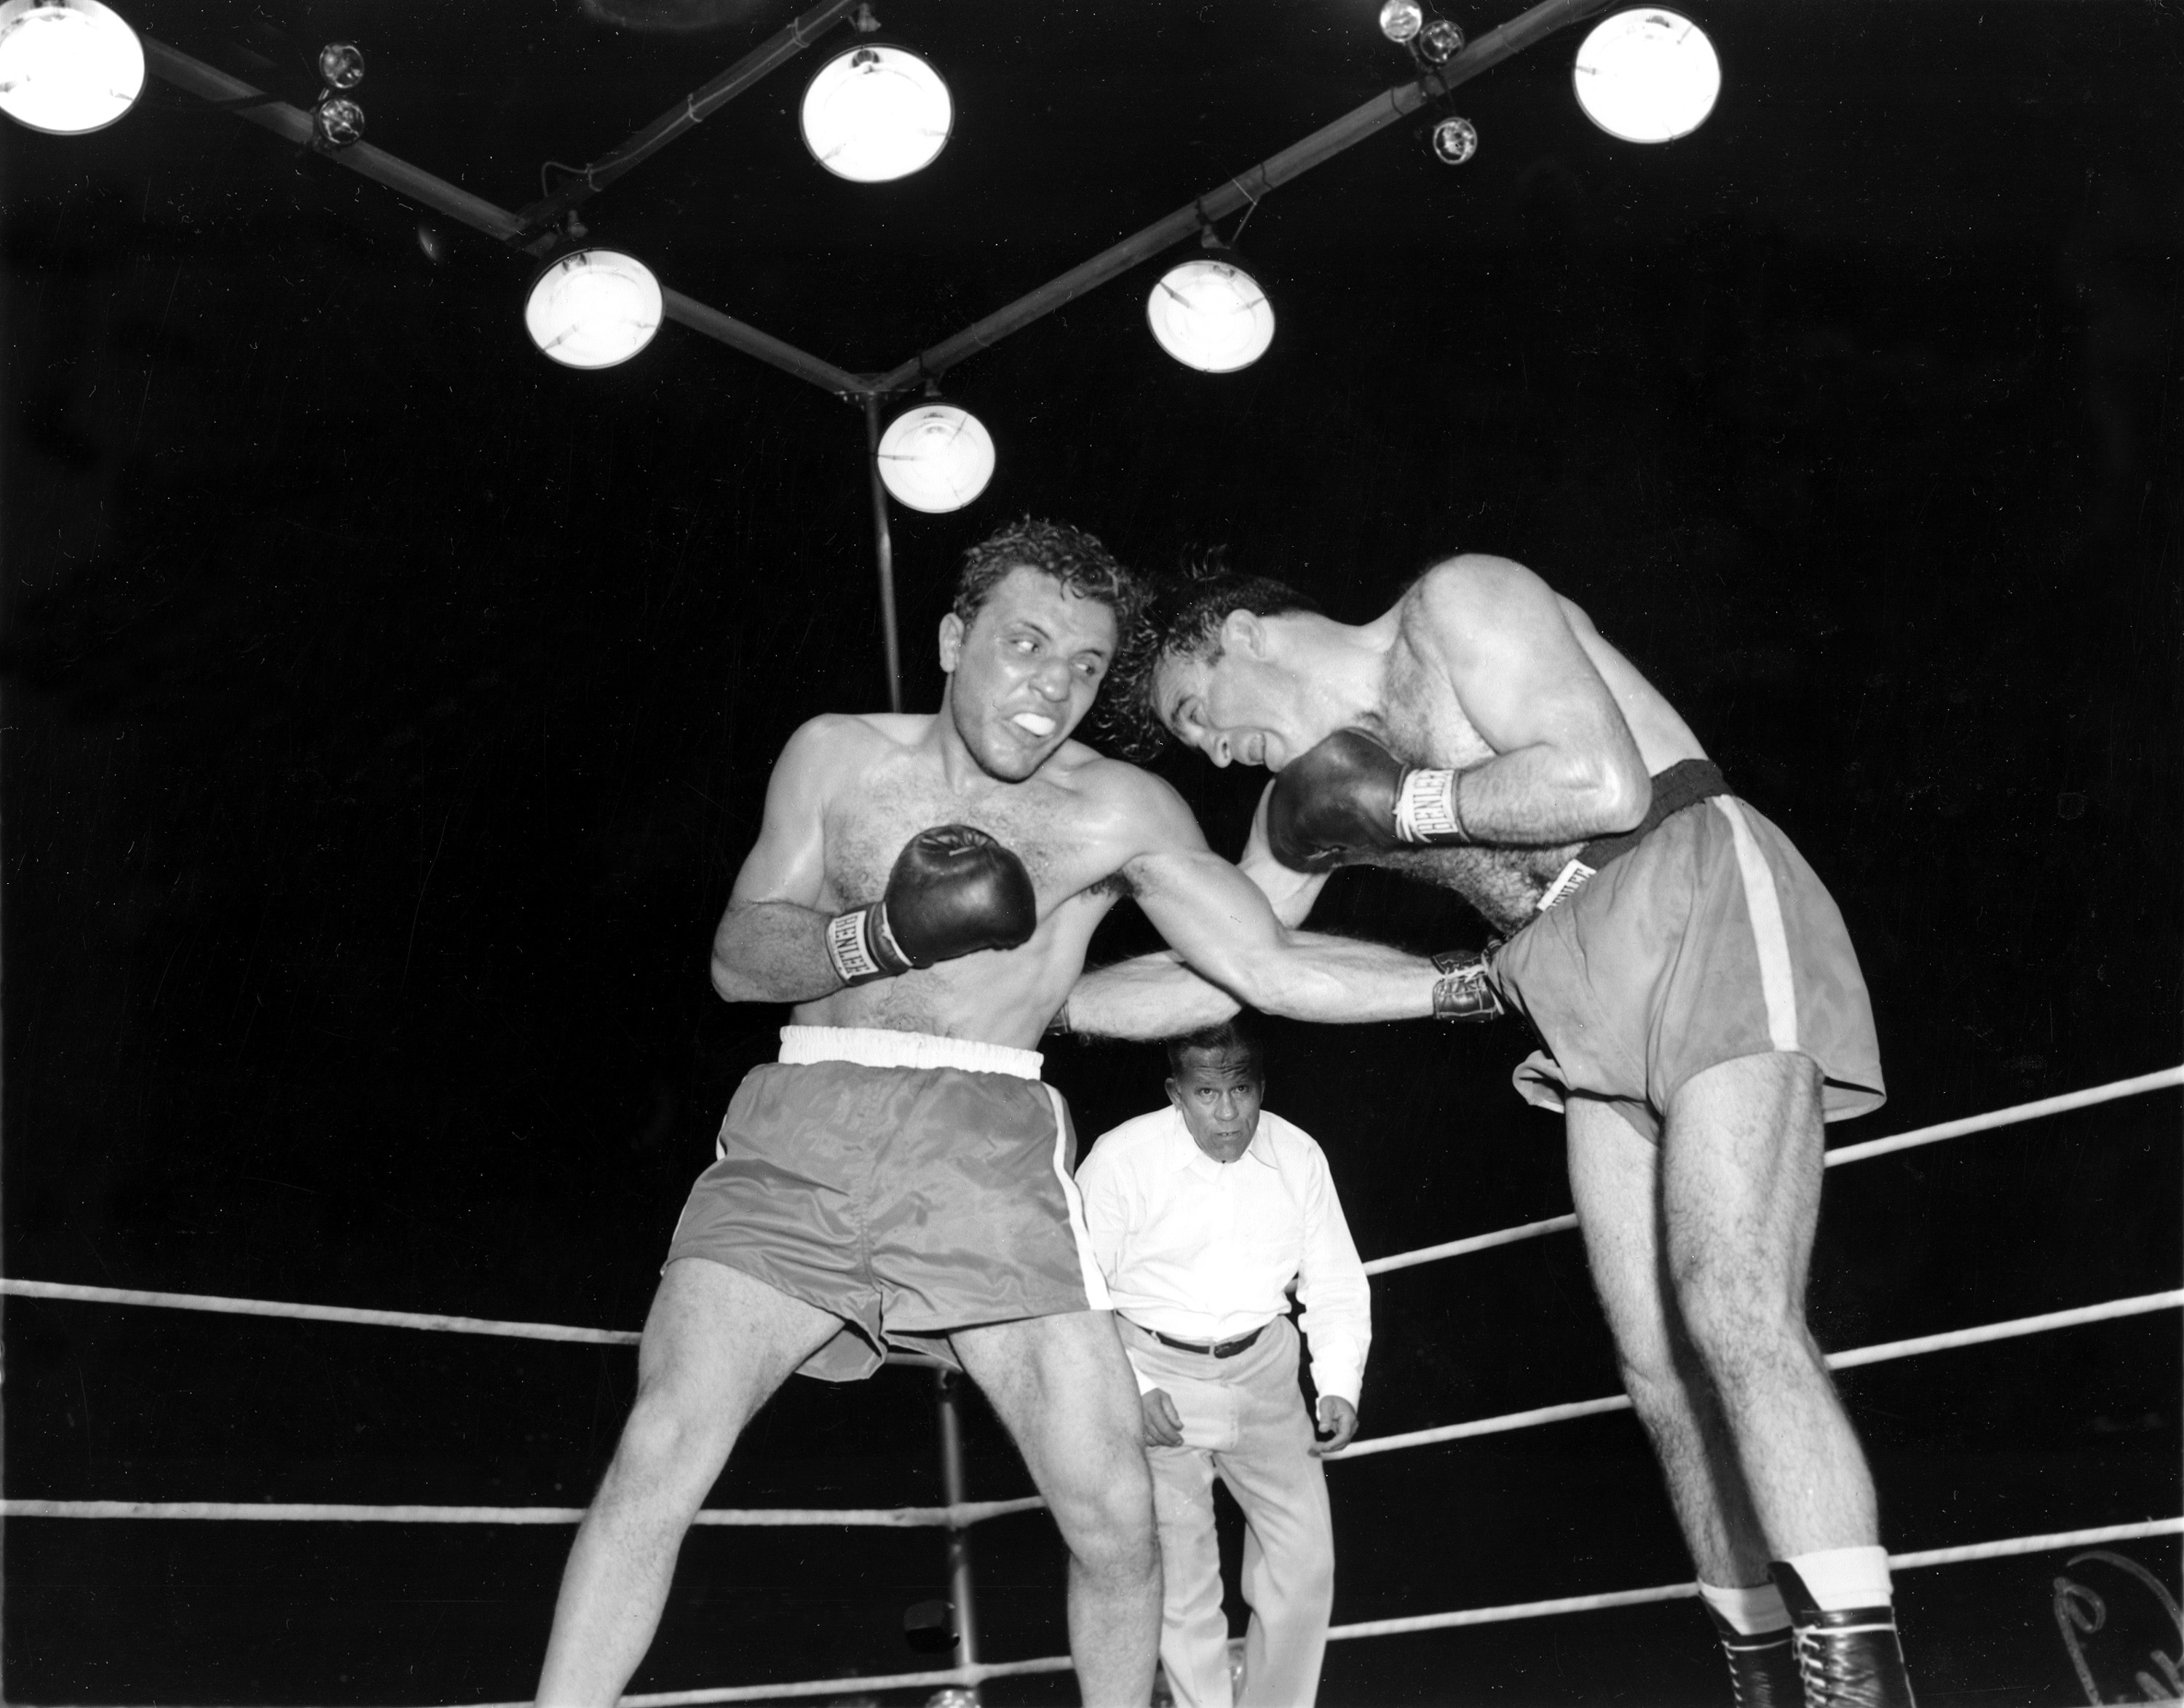 "FILE - In this June 16, 1949, file photo, Jake LaMotta, left, pounds Marcel Cerdan in third round of a world middleweight title bout in Detroit, Mich. LaMotta won the title by a knockout in the tenth round. LaMotta, whose life was depicted in the film ""Raging Bull,"" died Tuesday, Sept. 19, 2017, at a Miami-area hospital from complications of pneumonia. He was 95. (AP Photo/File)"